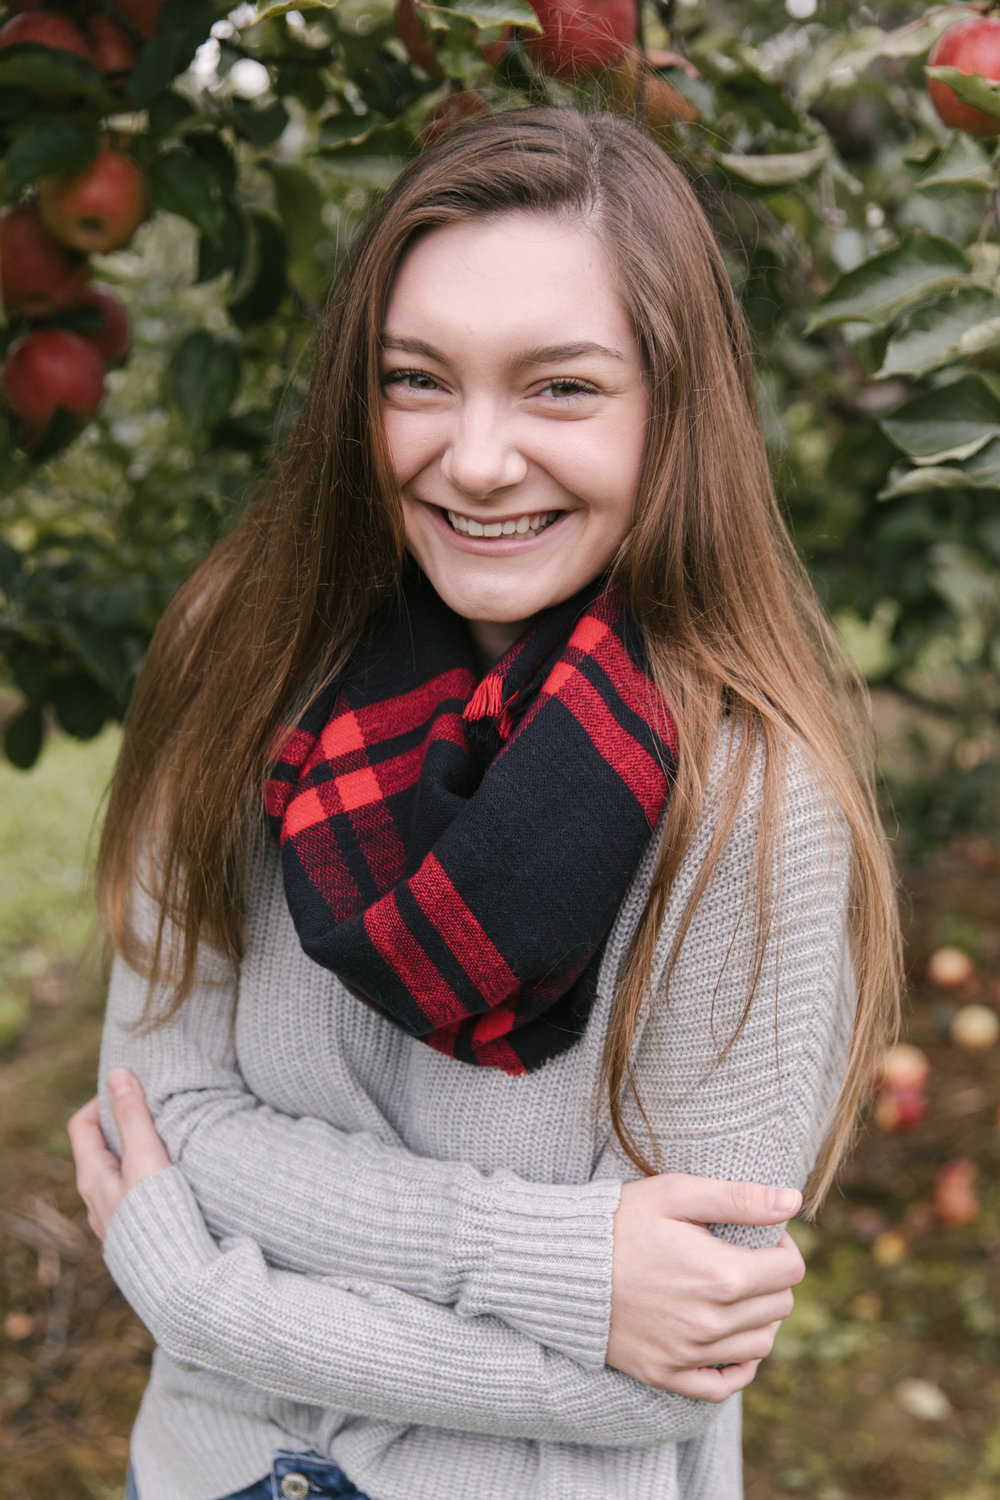 family-photography-session-at-hartford-apple-orchards-hartford-ohio-by-family-photographer-christie-leigh-photo-45.JPG